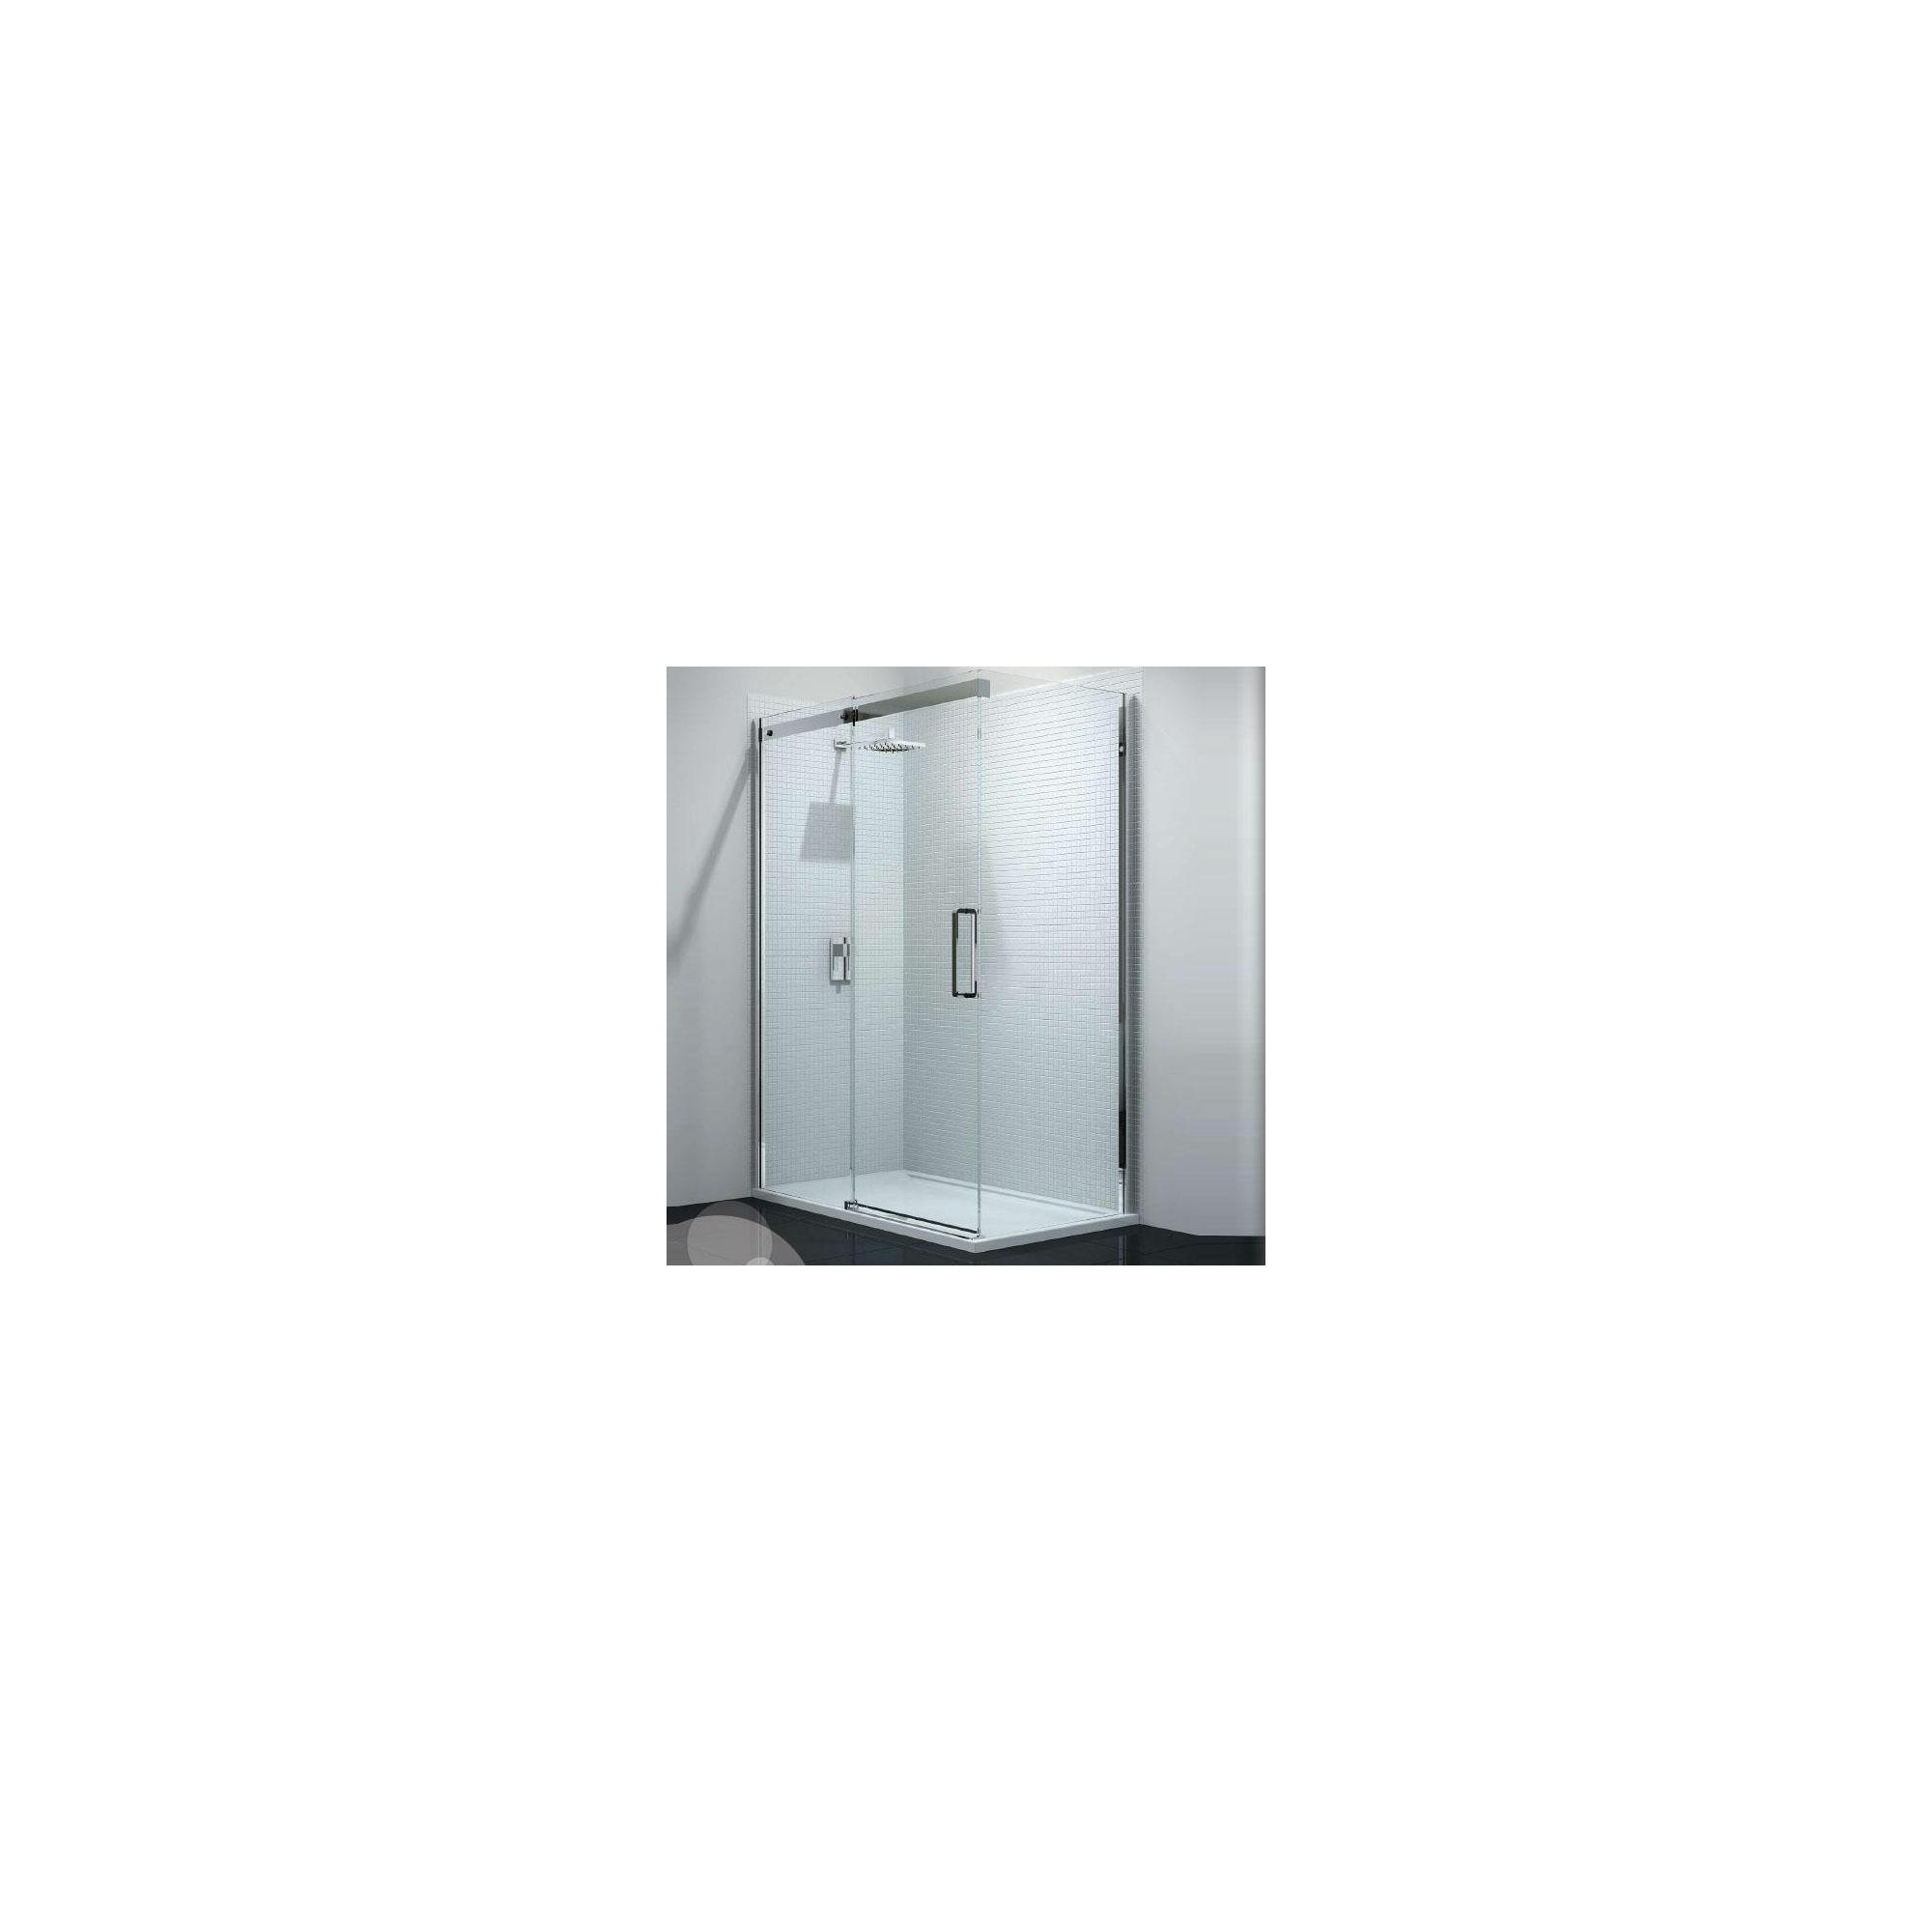 Merlyn Vivid Ten Sliding Door Shower Enclosure, 1400mm x 900mm, Low Profile Tray, 10mm Glass at Tesco Direct